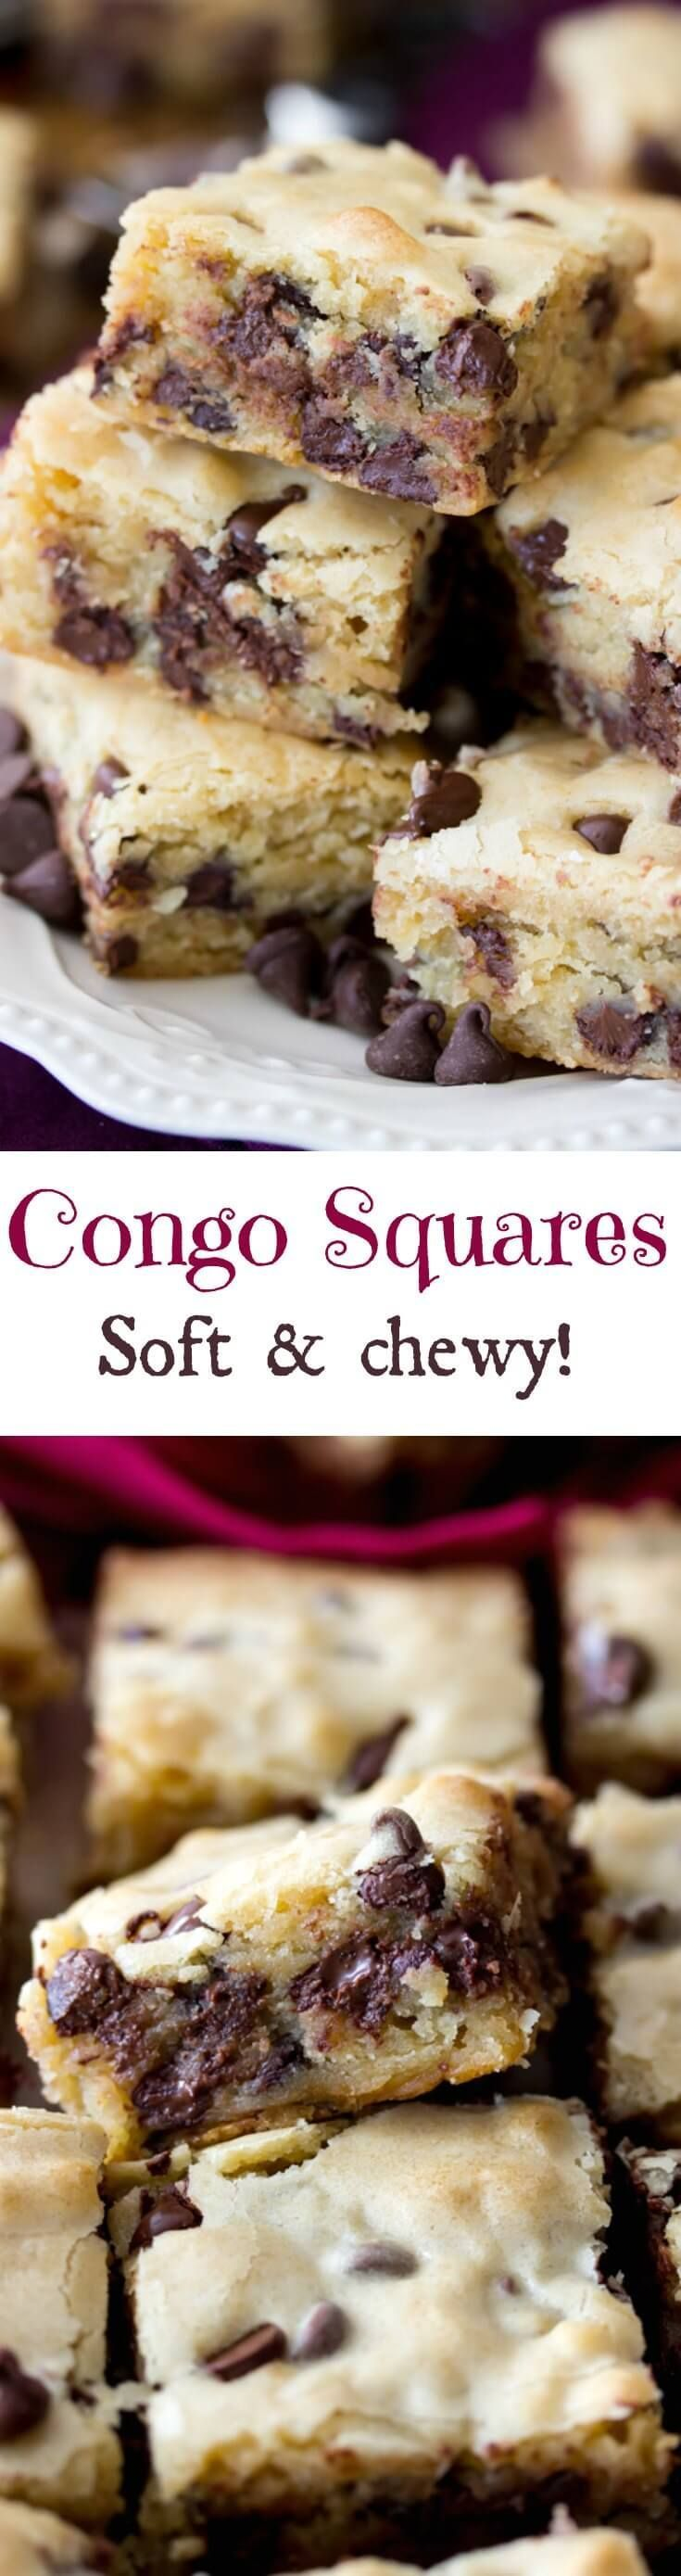 Soft & chewy Congo Squares -- the best chocolate chip cookies in a pan!    Sugar Spun Run